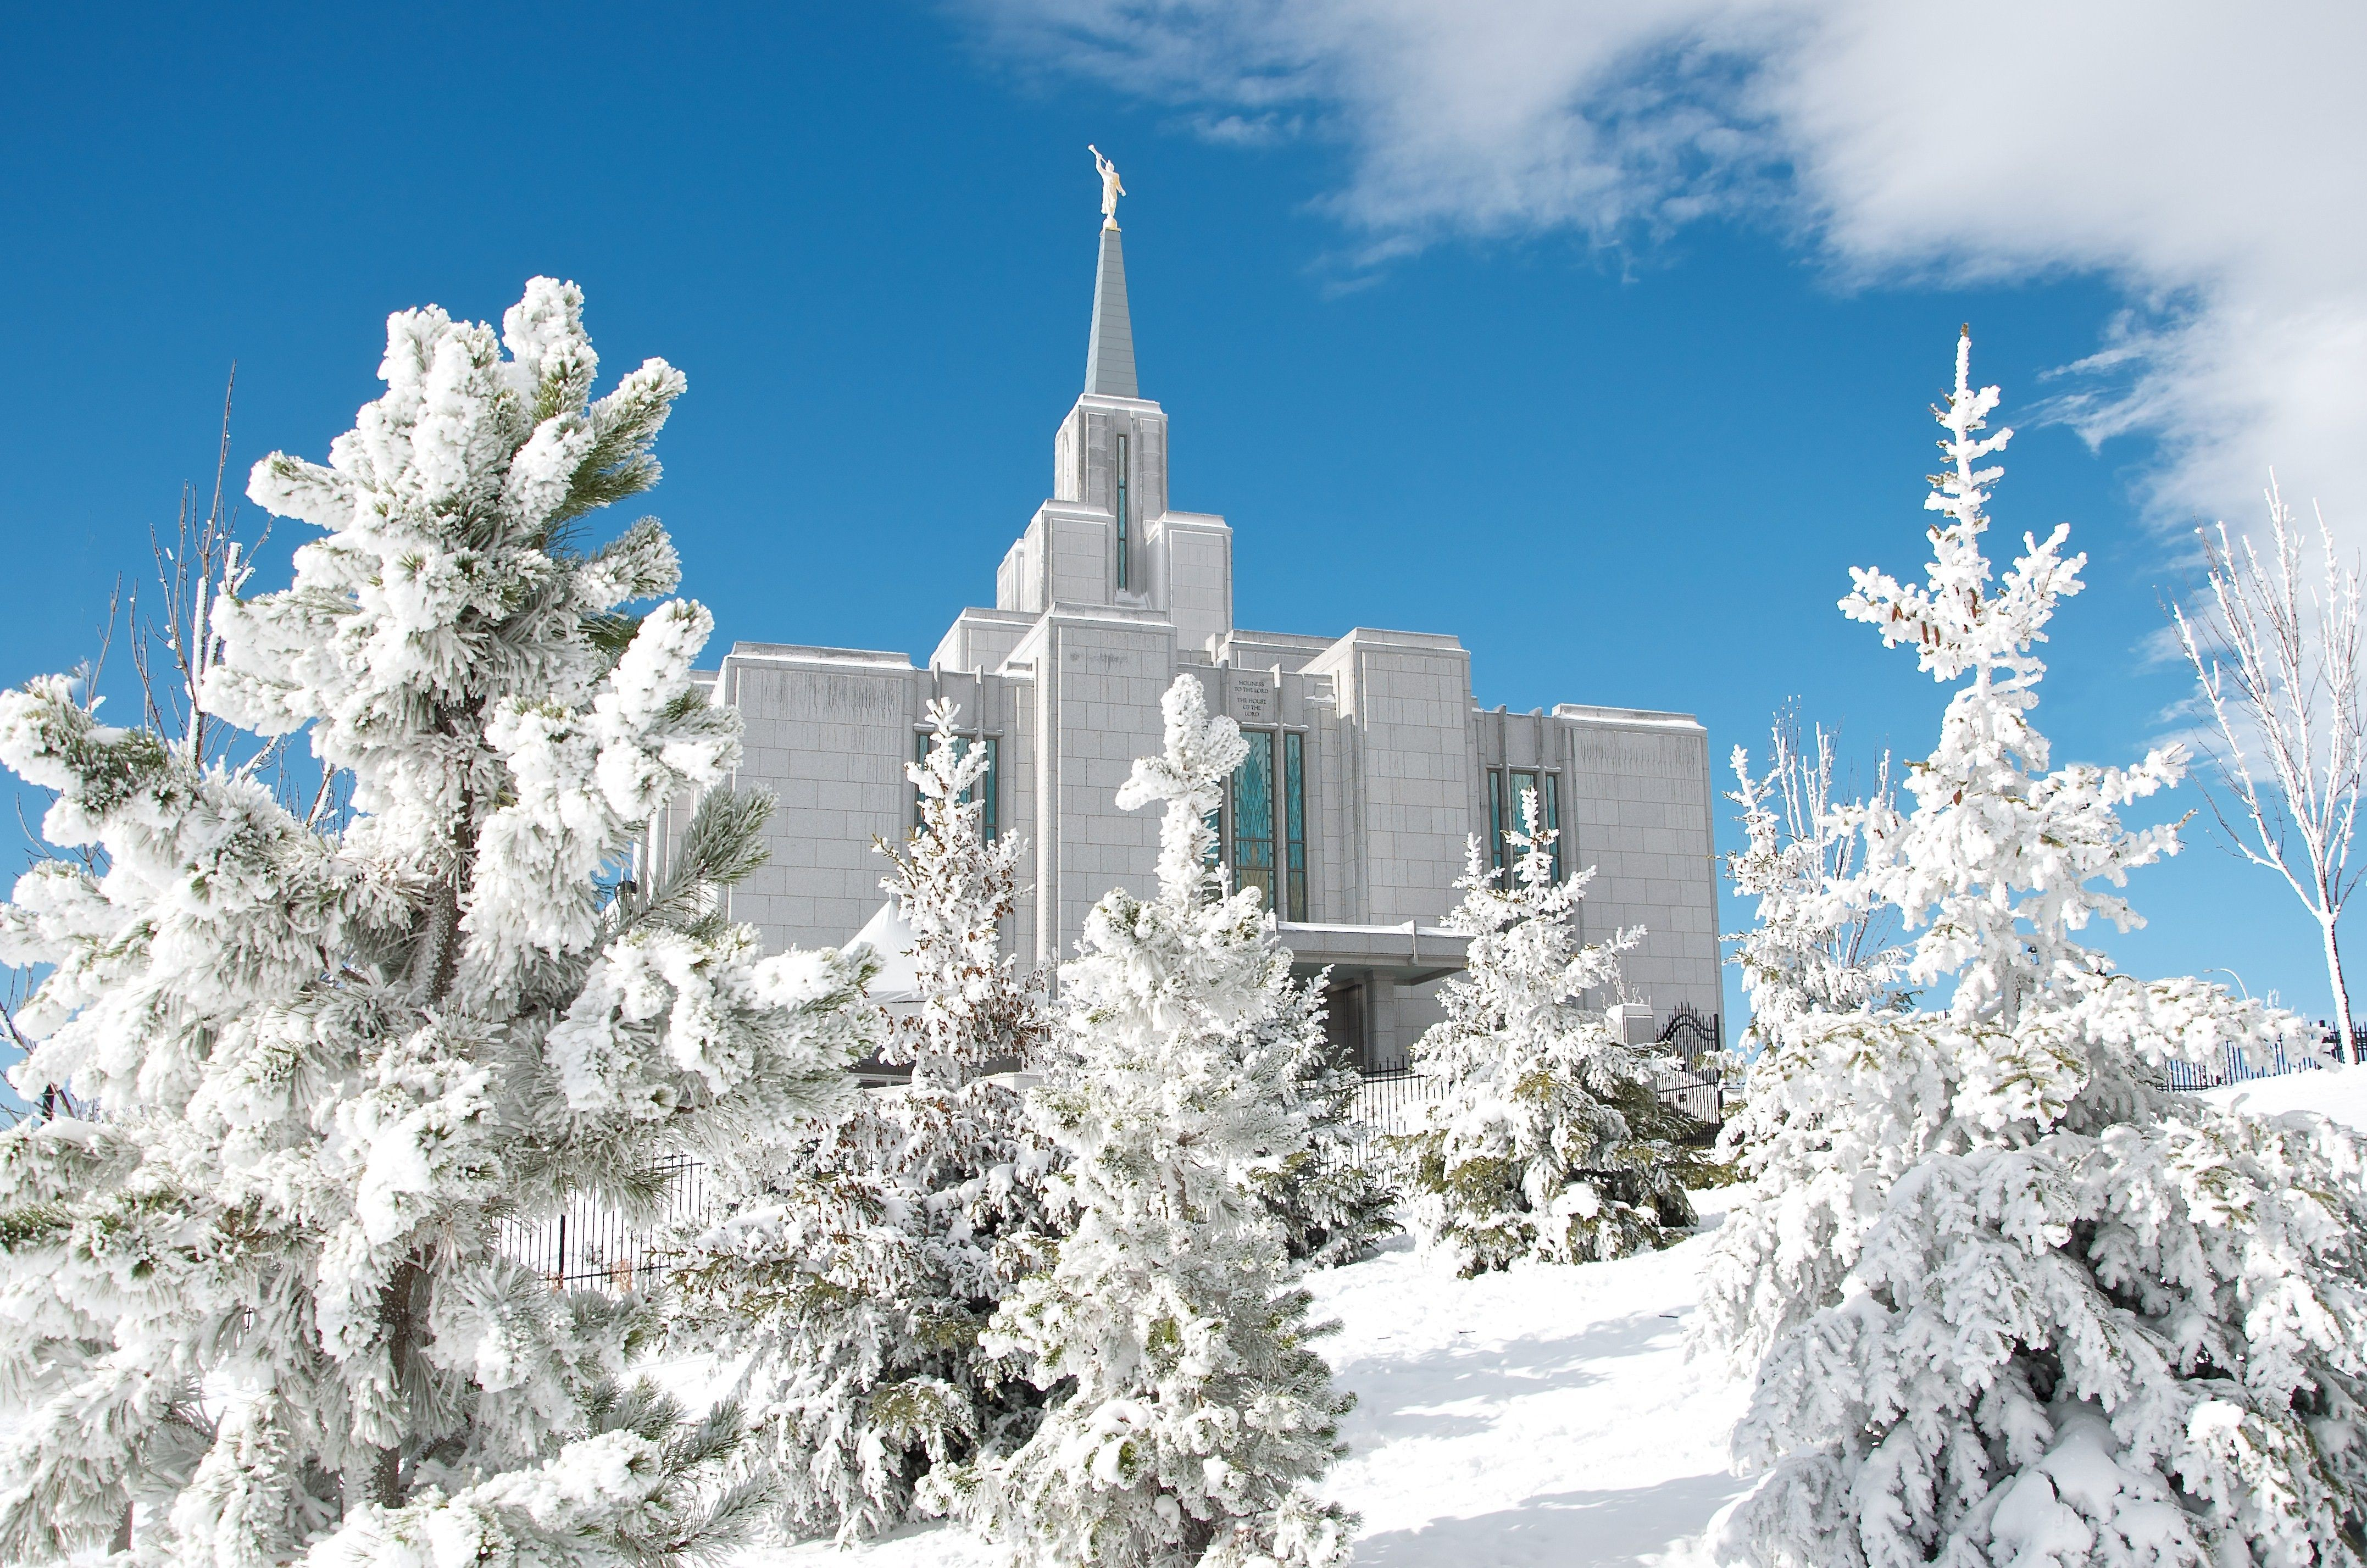 The Calgary Alberta Temple is covered in snow during the winter.